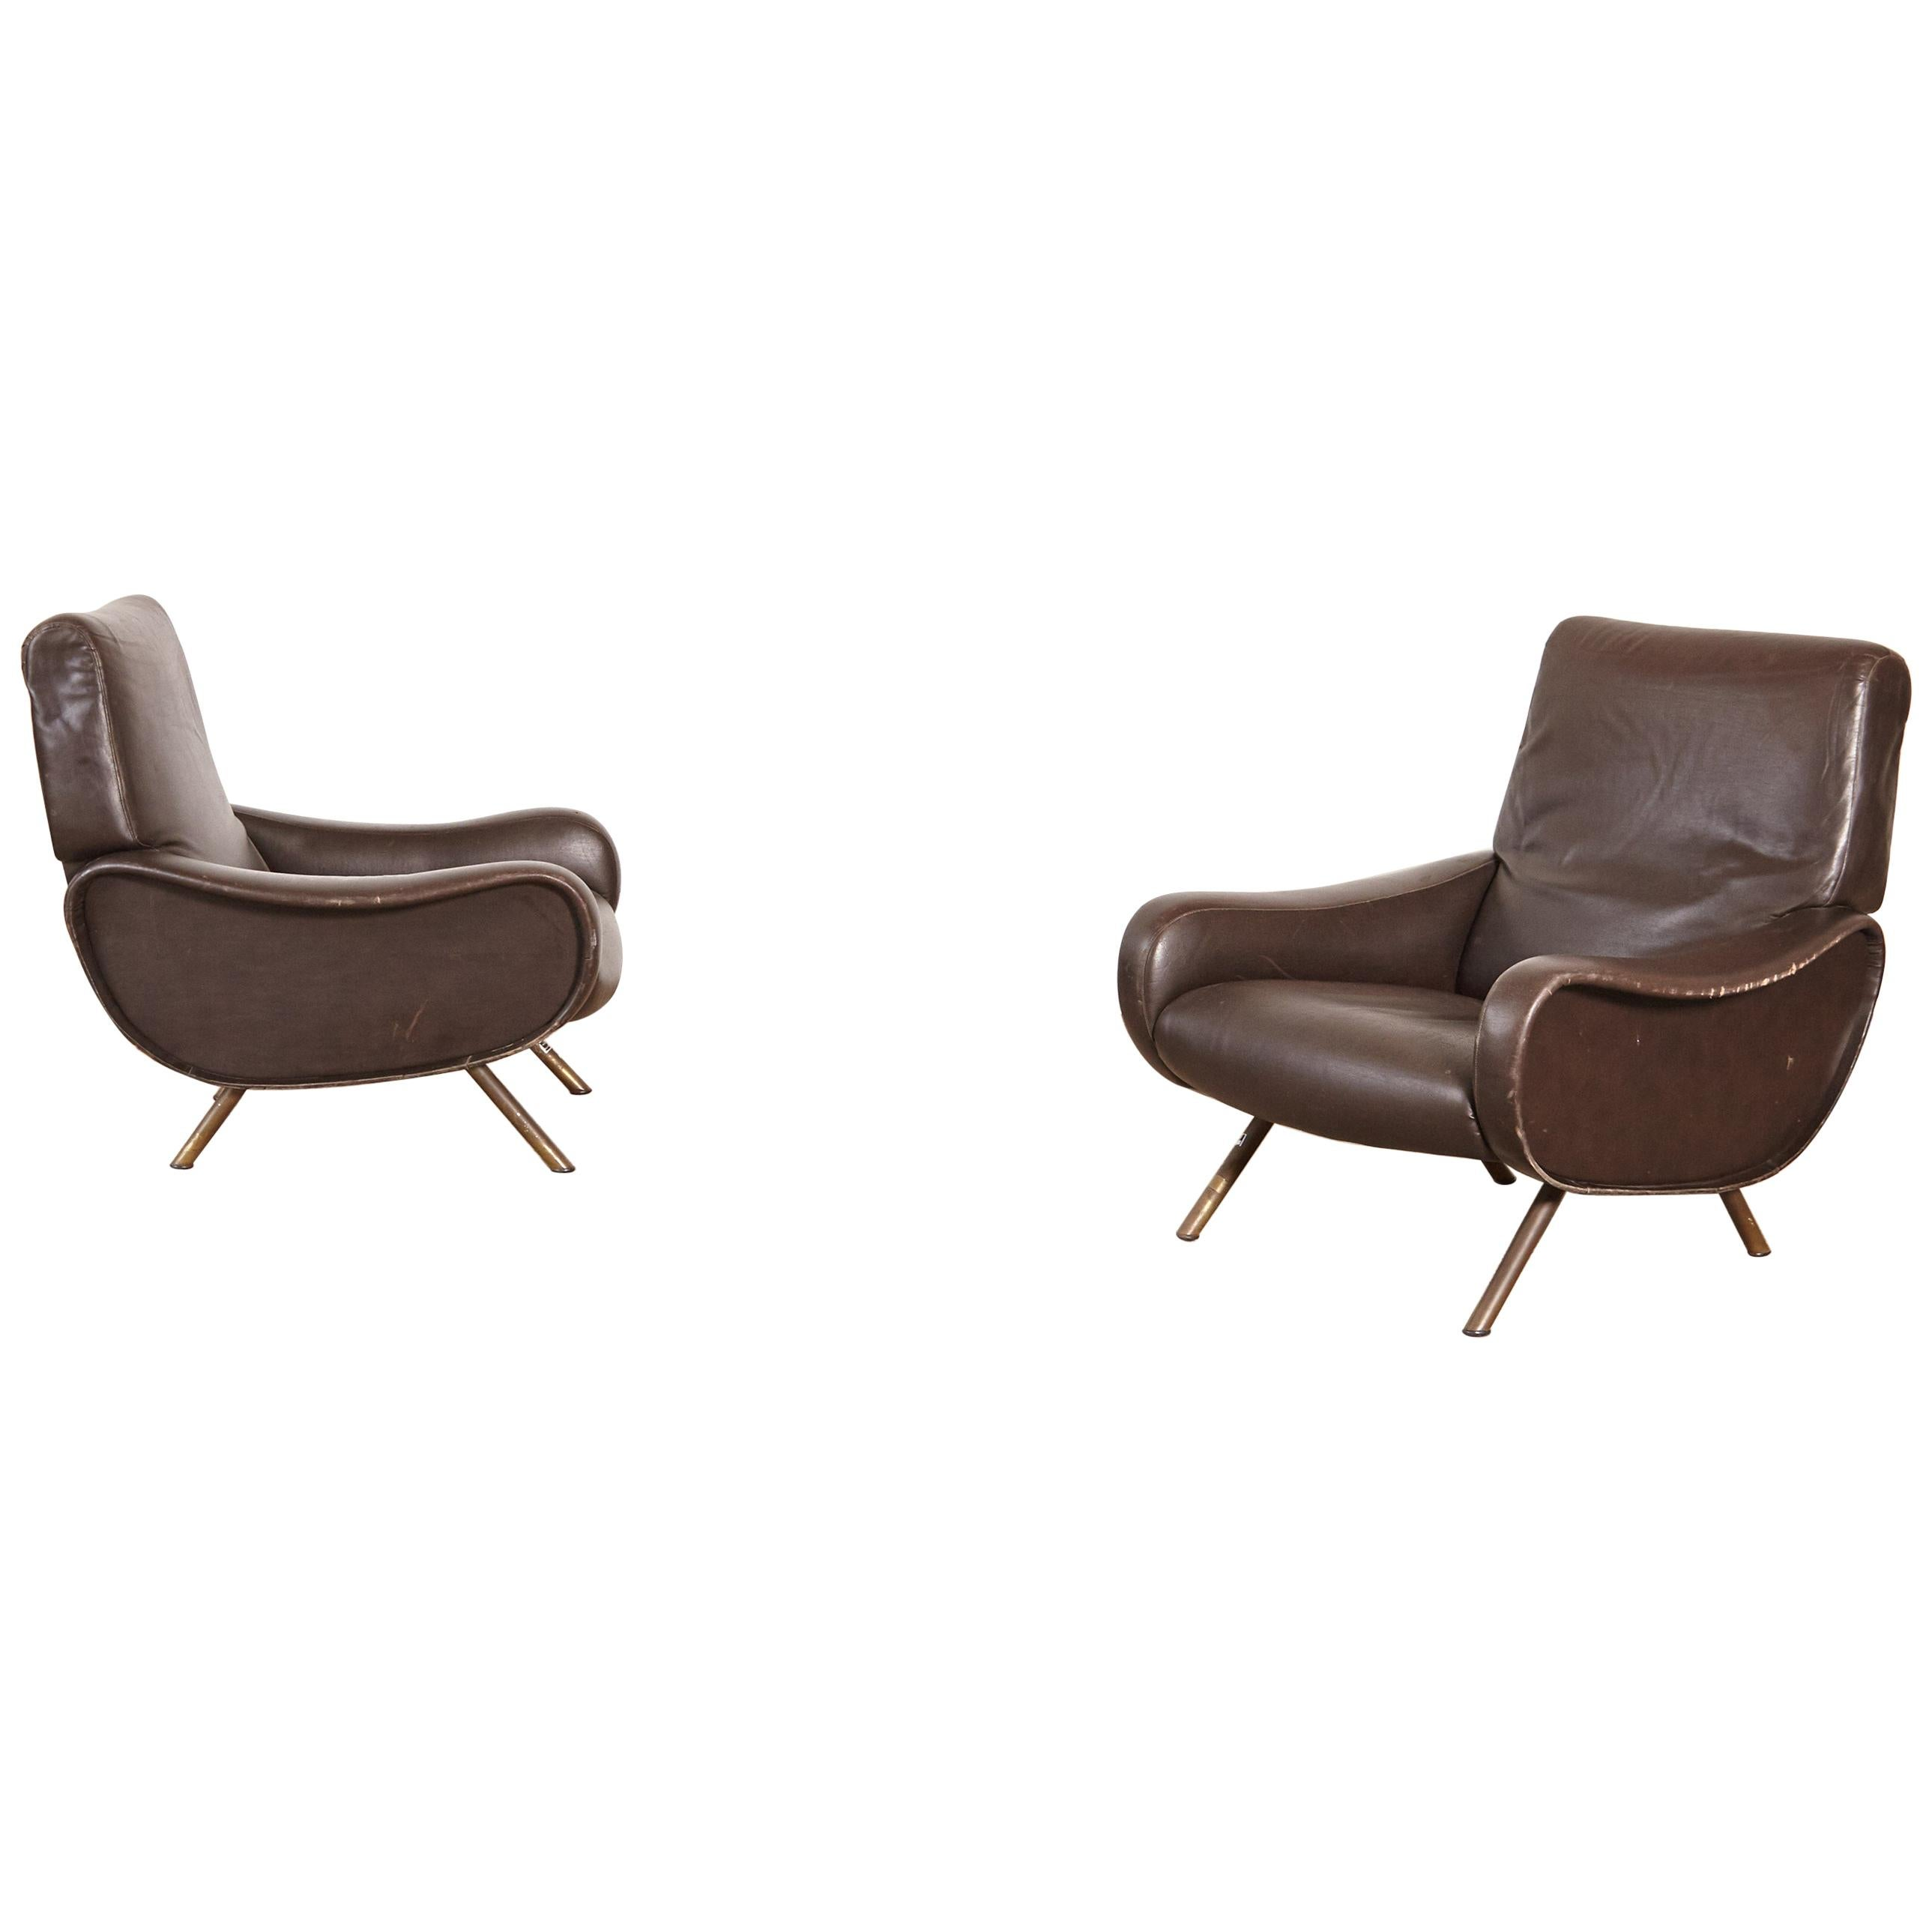 Authentic Marco Zanuso Lady Chairs, Arflex, Italy, 1960s, for Reupholstery